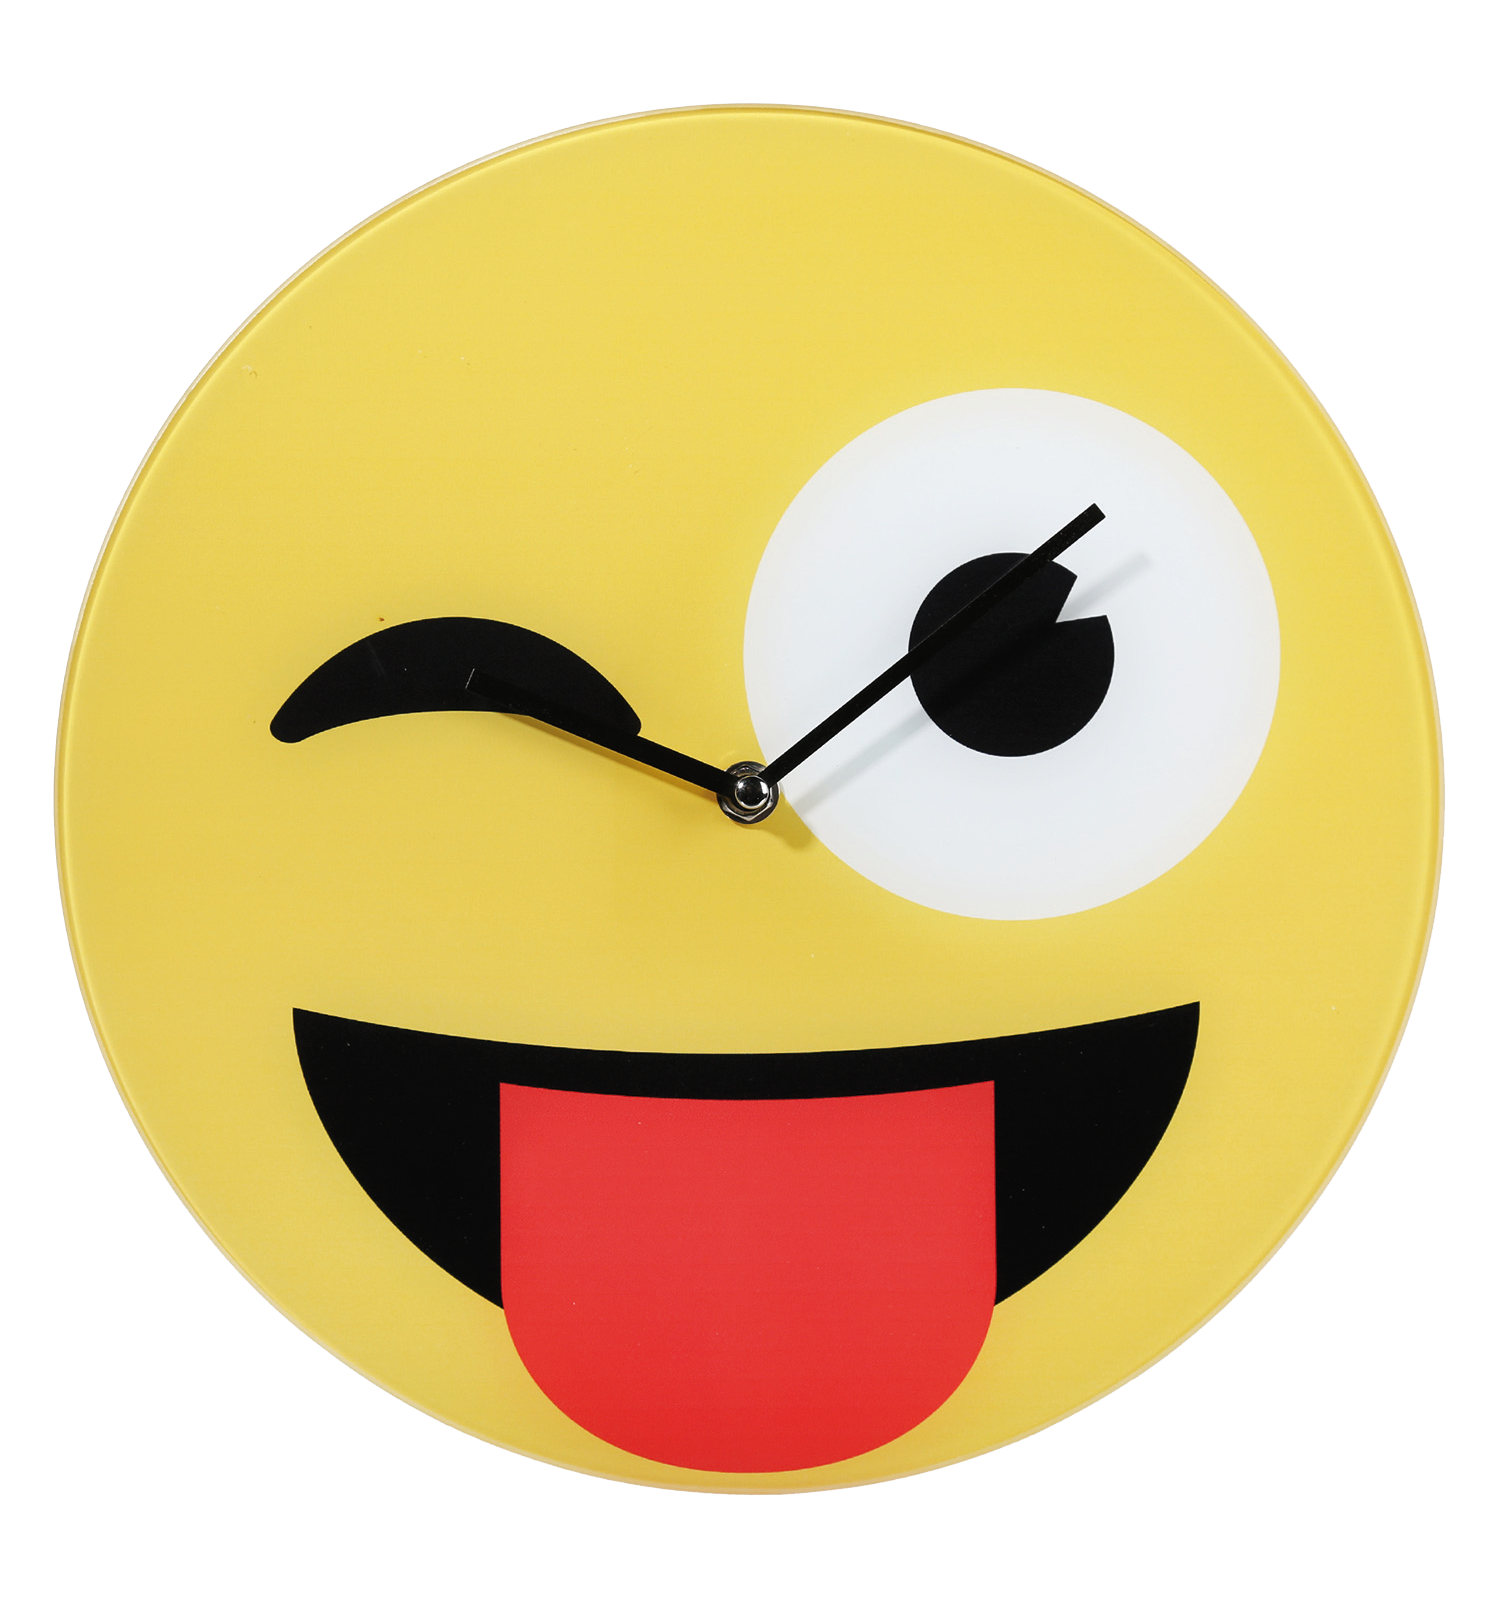 Glass wall clock with Emoji smiley picture with tonque